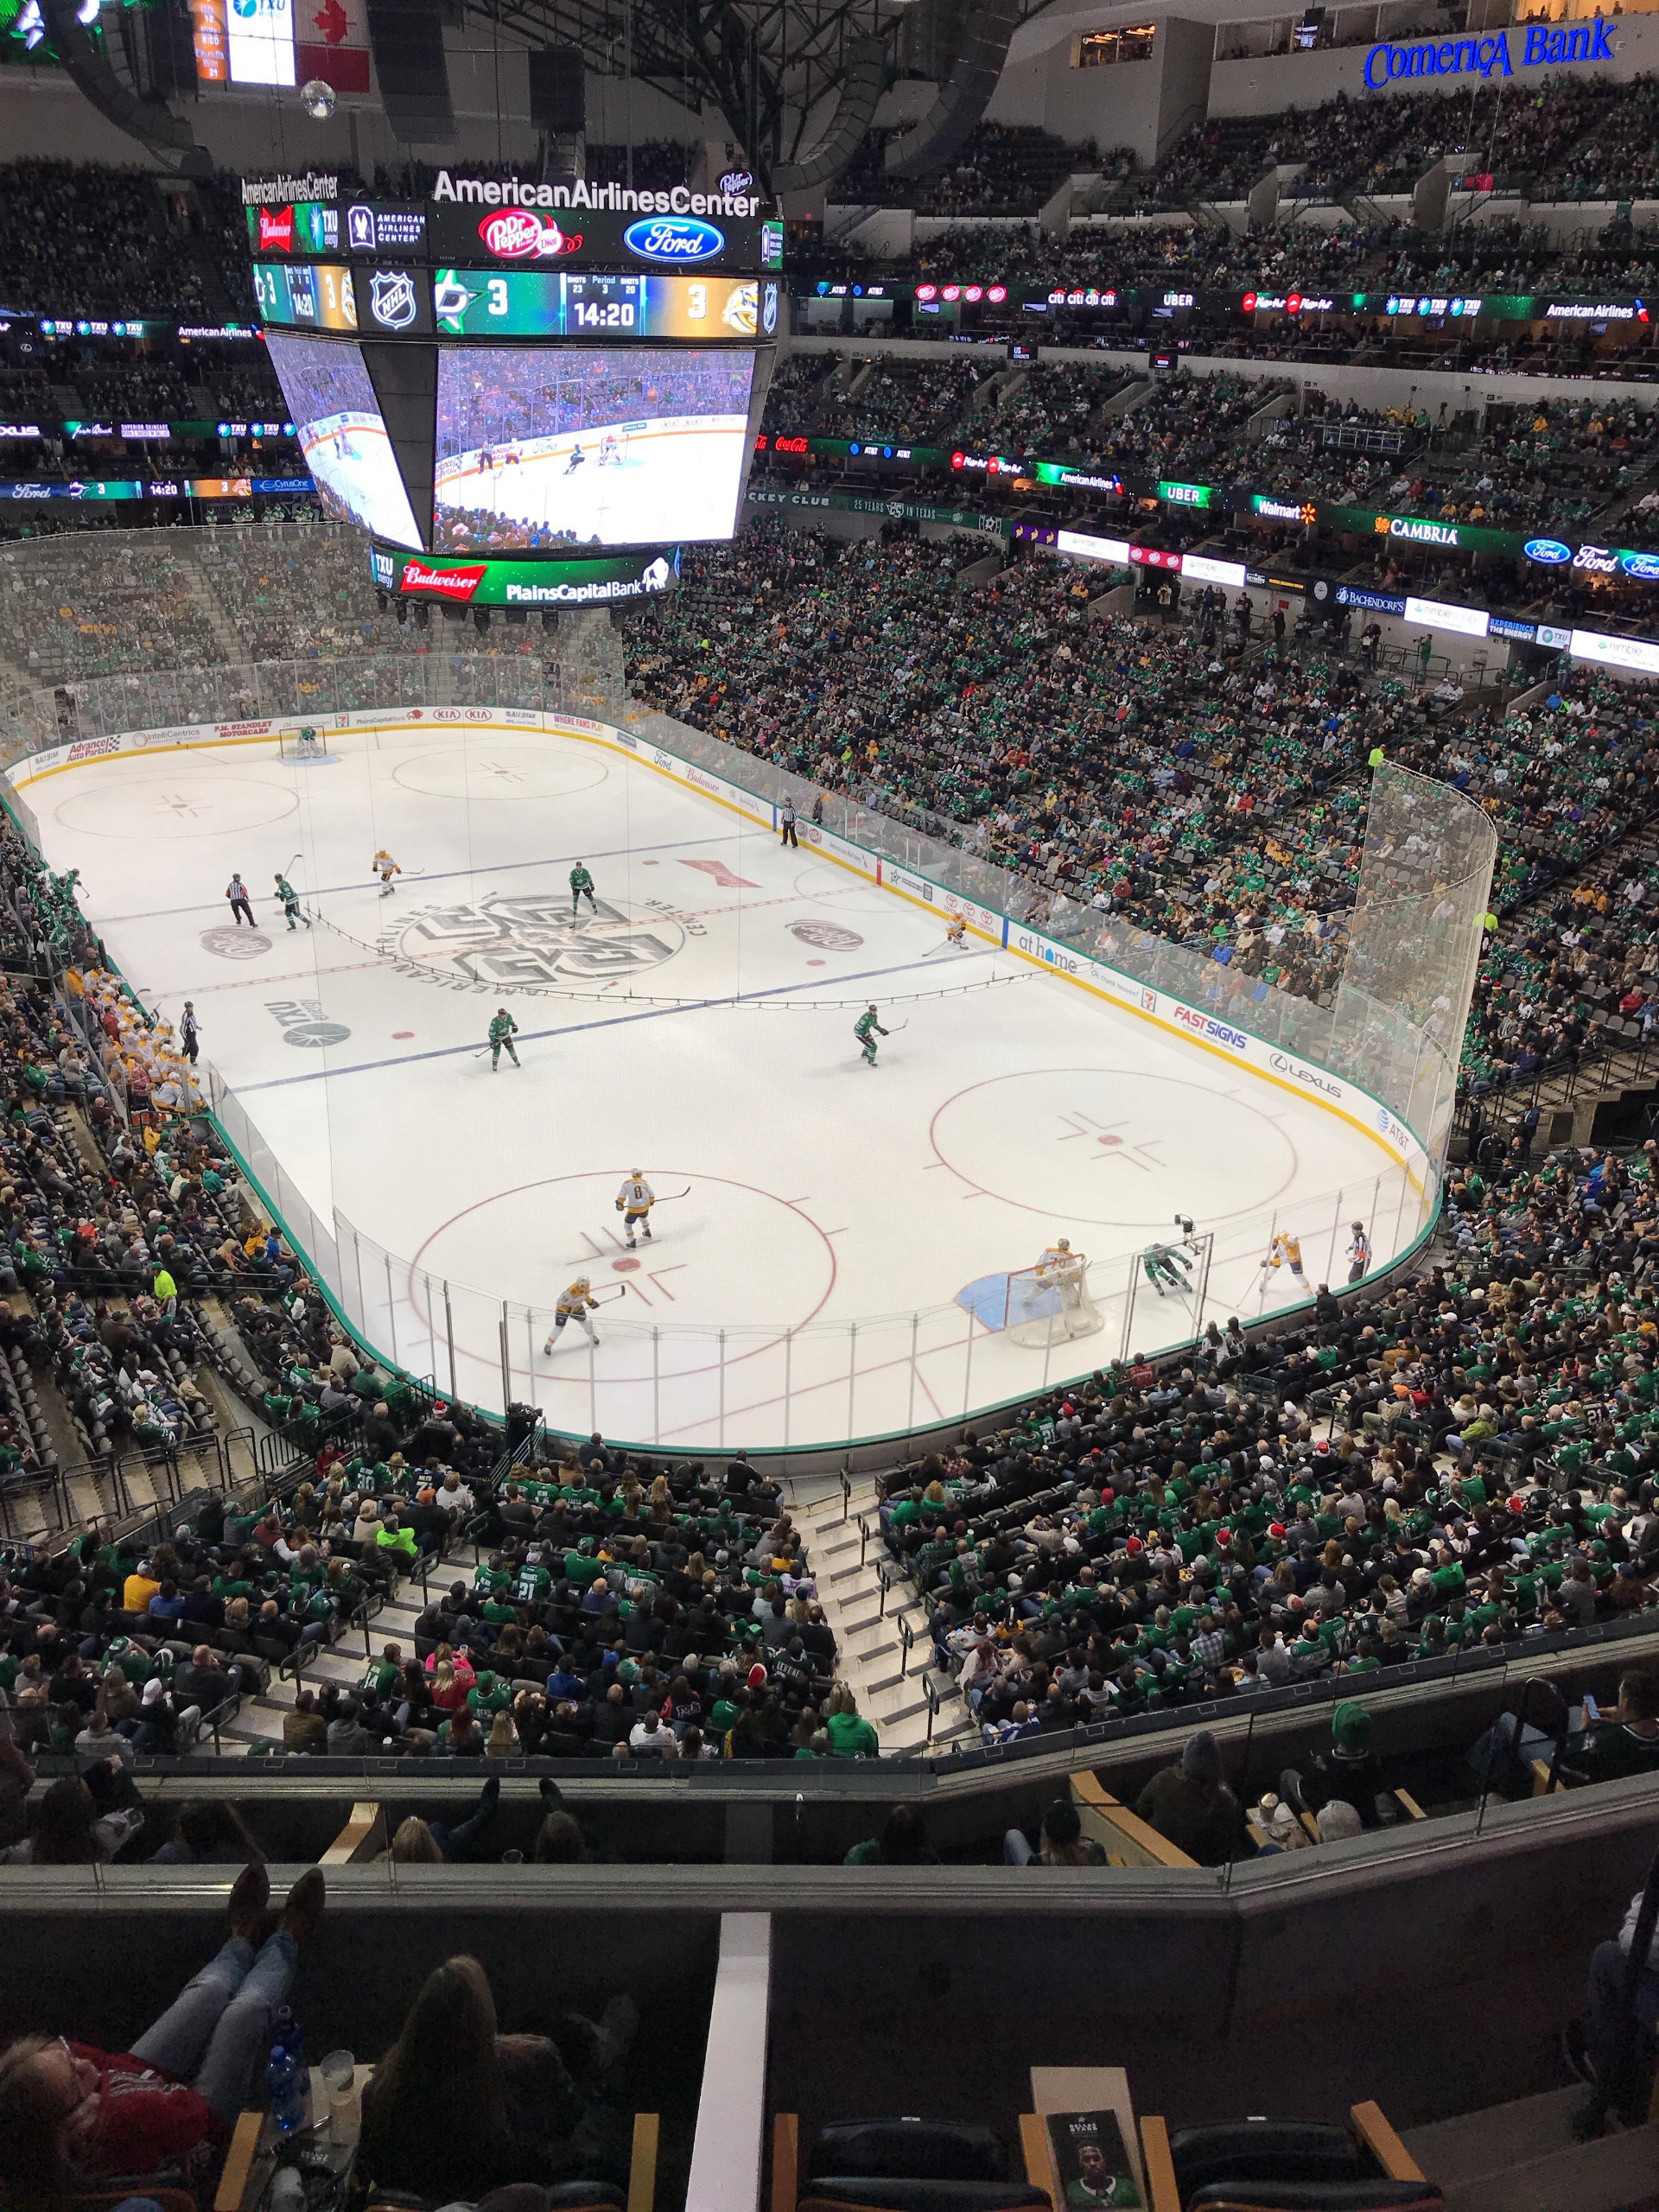 American Airlines Center Section 320 Rangée A Siège 13-14